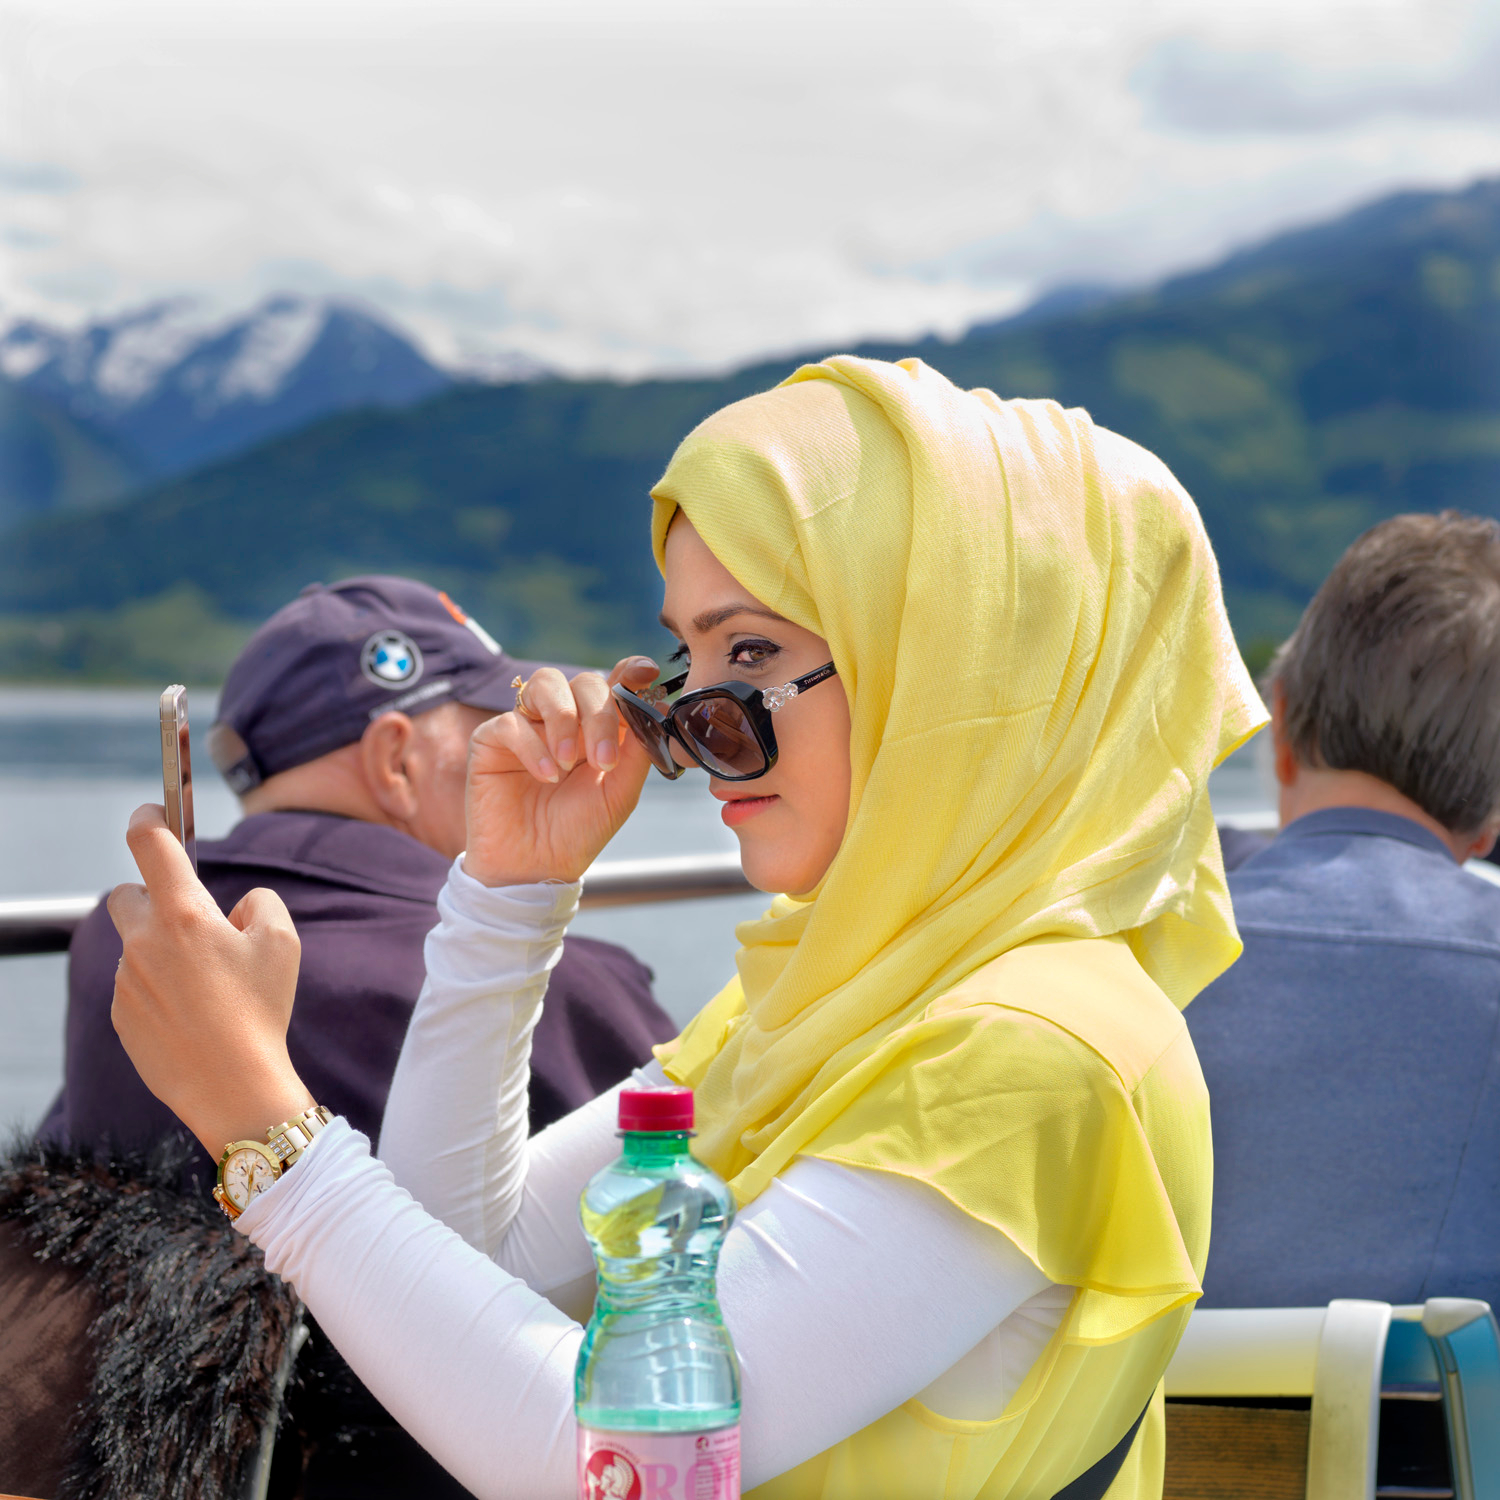 zell am see muslim personals Our network of muslim men and women in zell am see is the perfect place to make muslim friends or find a muslim boyfriend or zell am see gay personals.